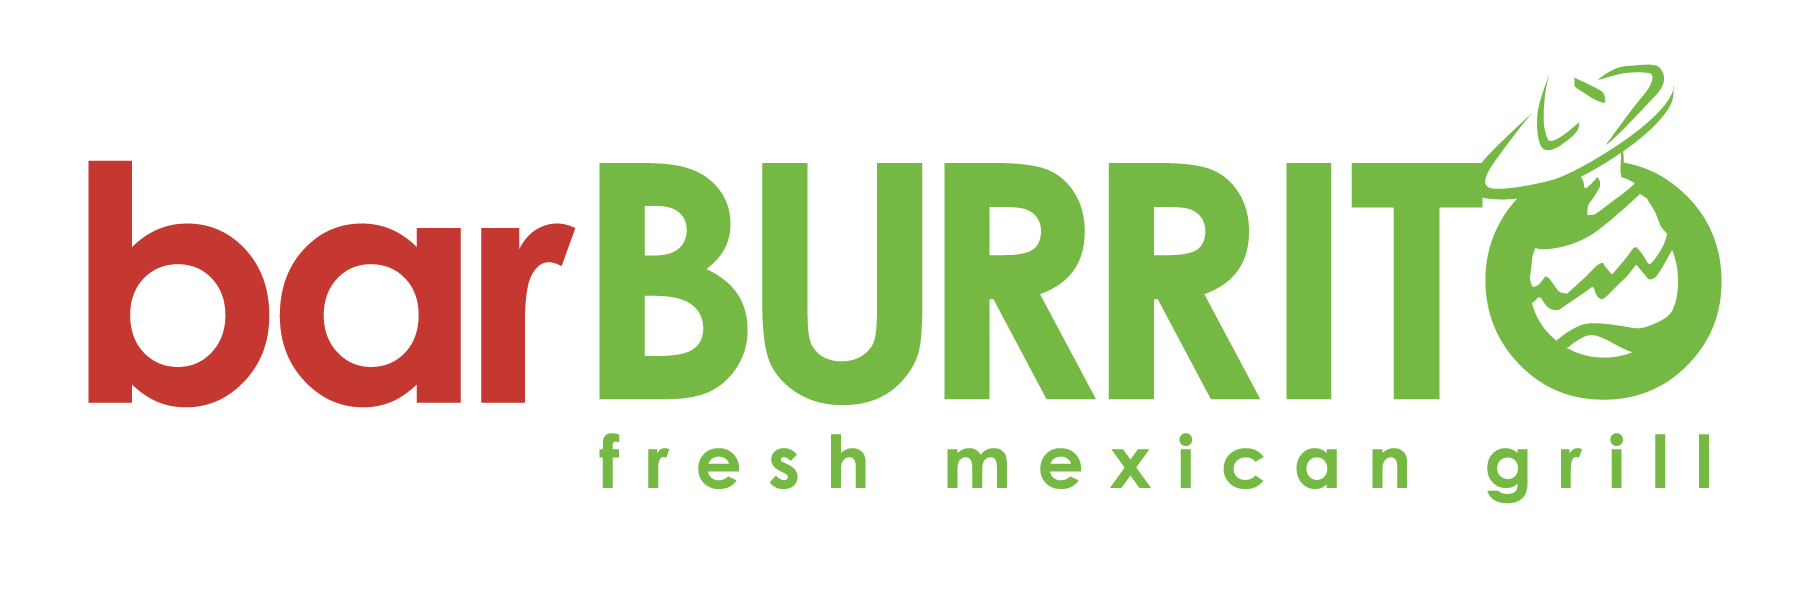 BarBurrito_Logo_Colour-01.jpg